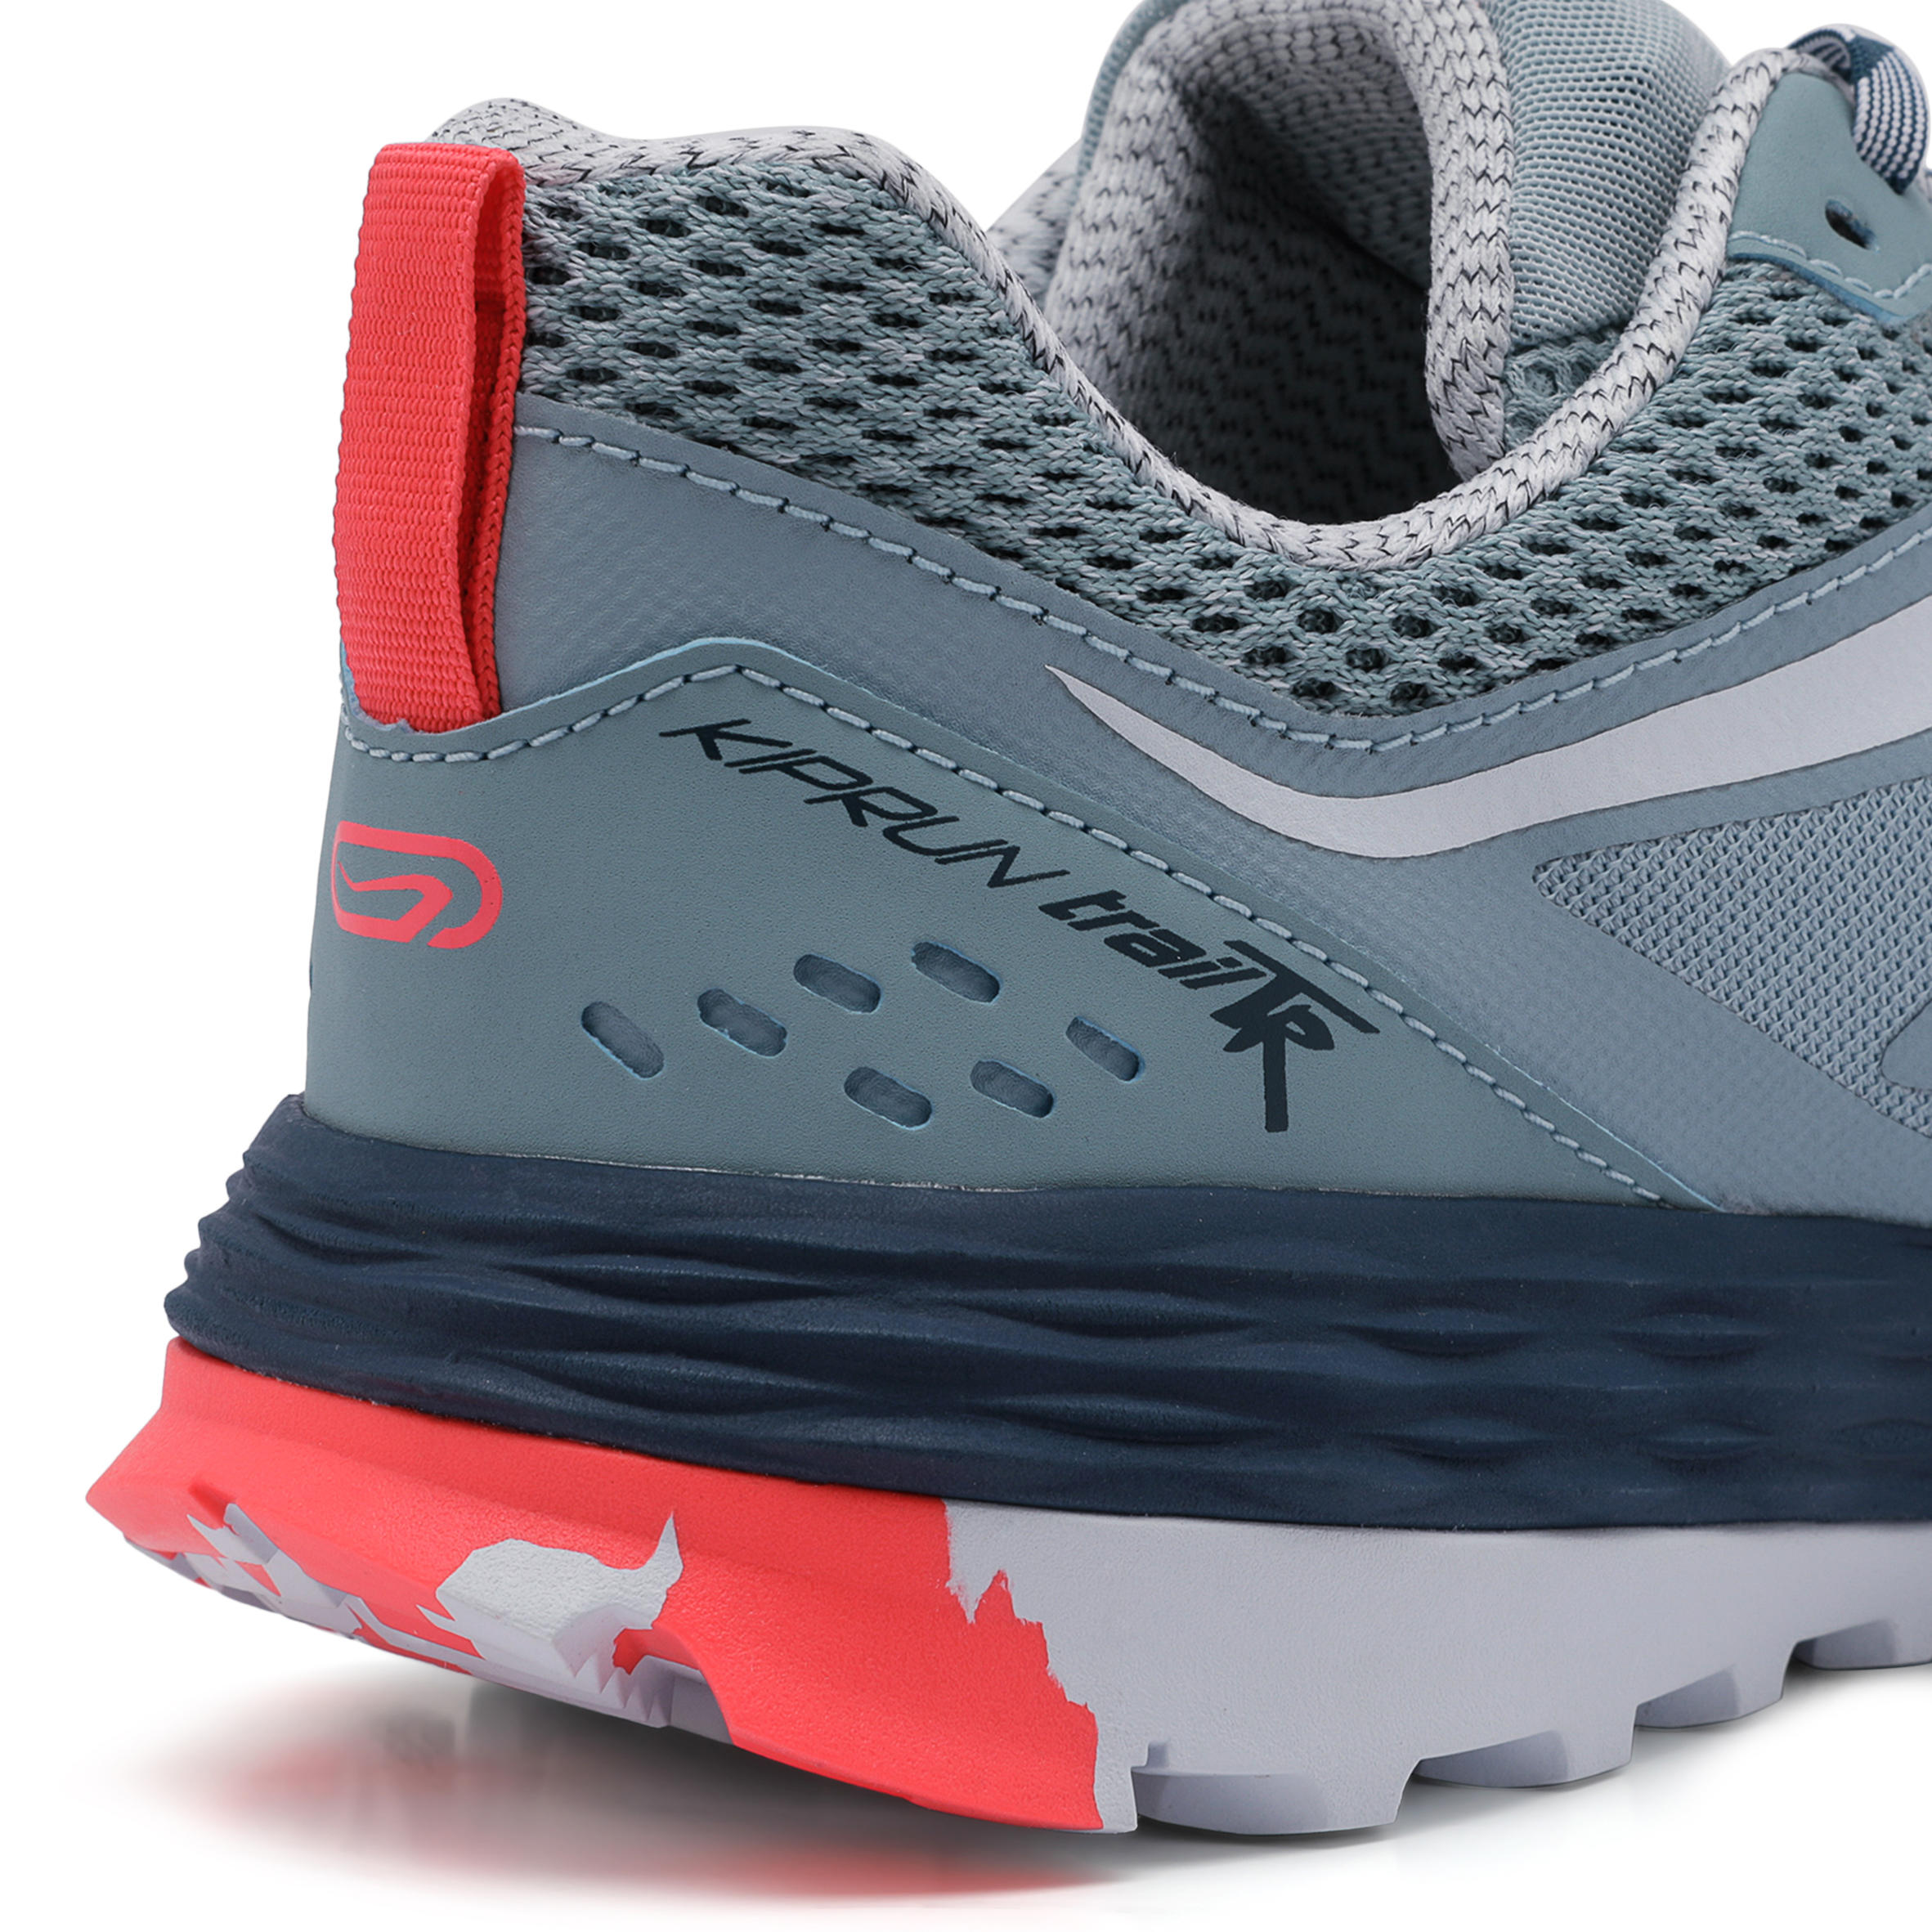 TRAIL RUNNING SHOES - LIGHT BLUE/PINK